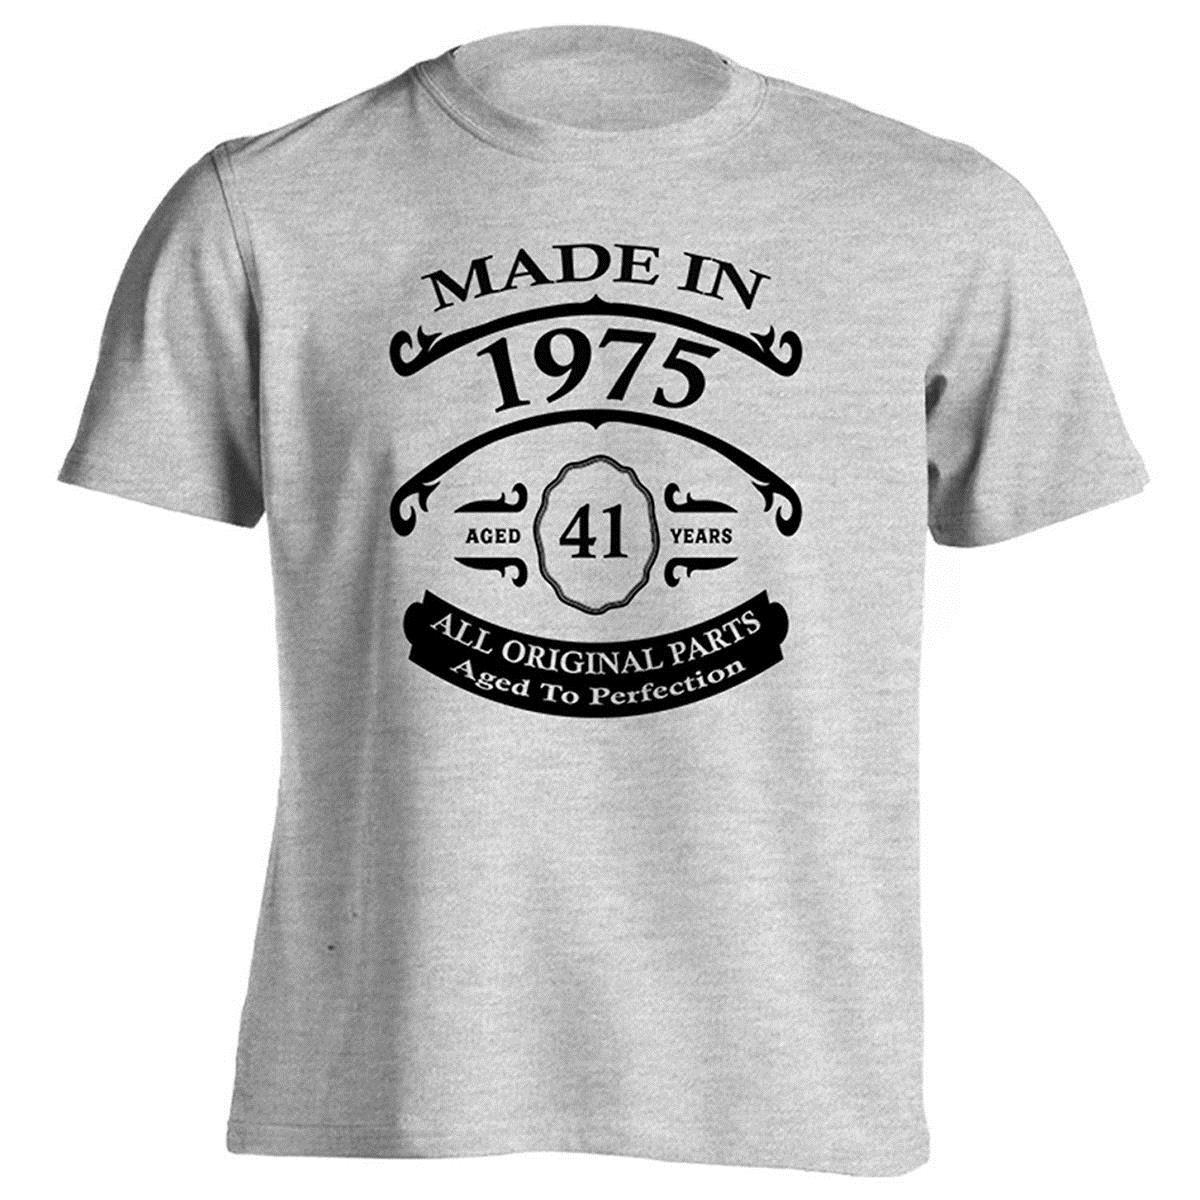 Creative Printed 41st Birthday Gift T Shirt Born In 1975 Vintage Aged 41 Years To Perfection Short Sleeve Mens Tops Tee Online Shopping